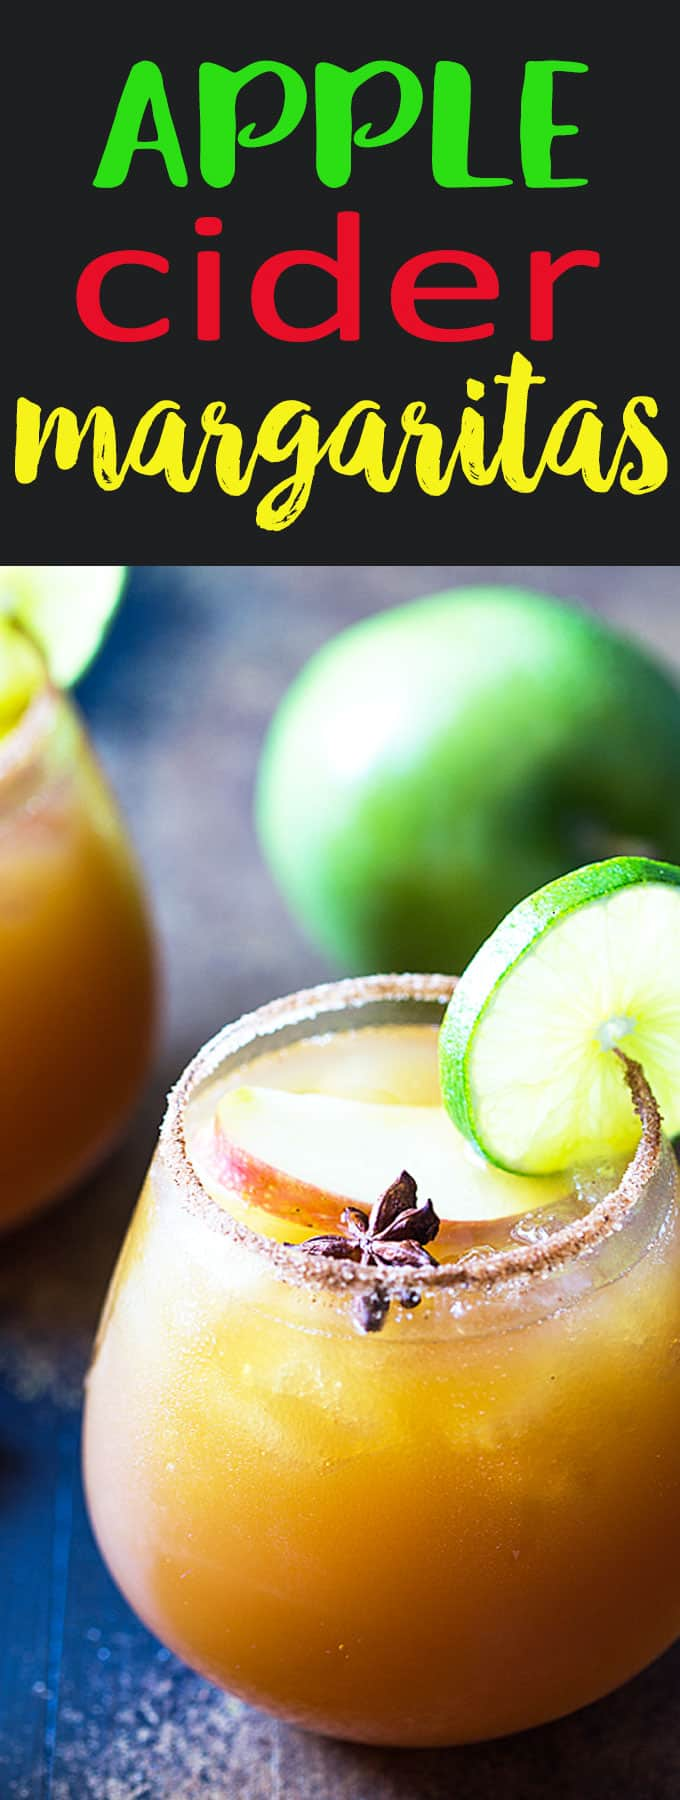 Apple Cider Margaritas - So sweet, tart and dangerously refreshing!